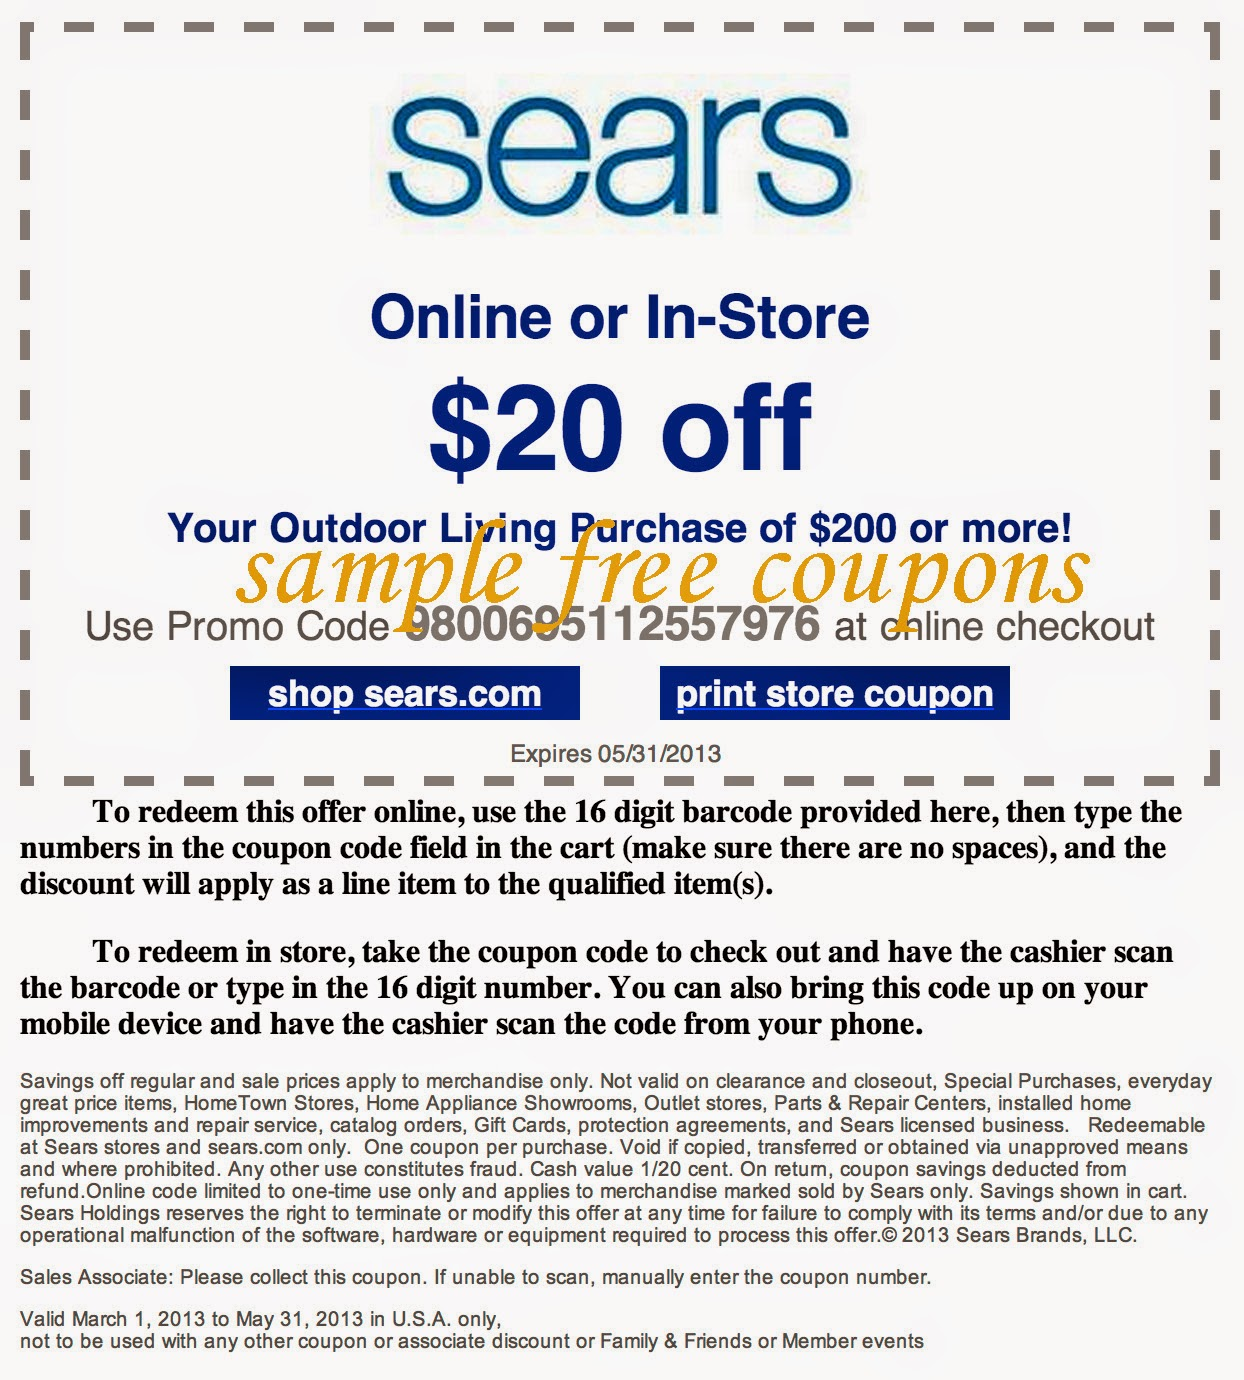 Sears discount coupons